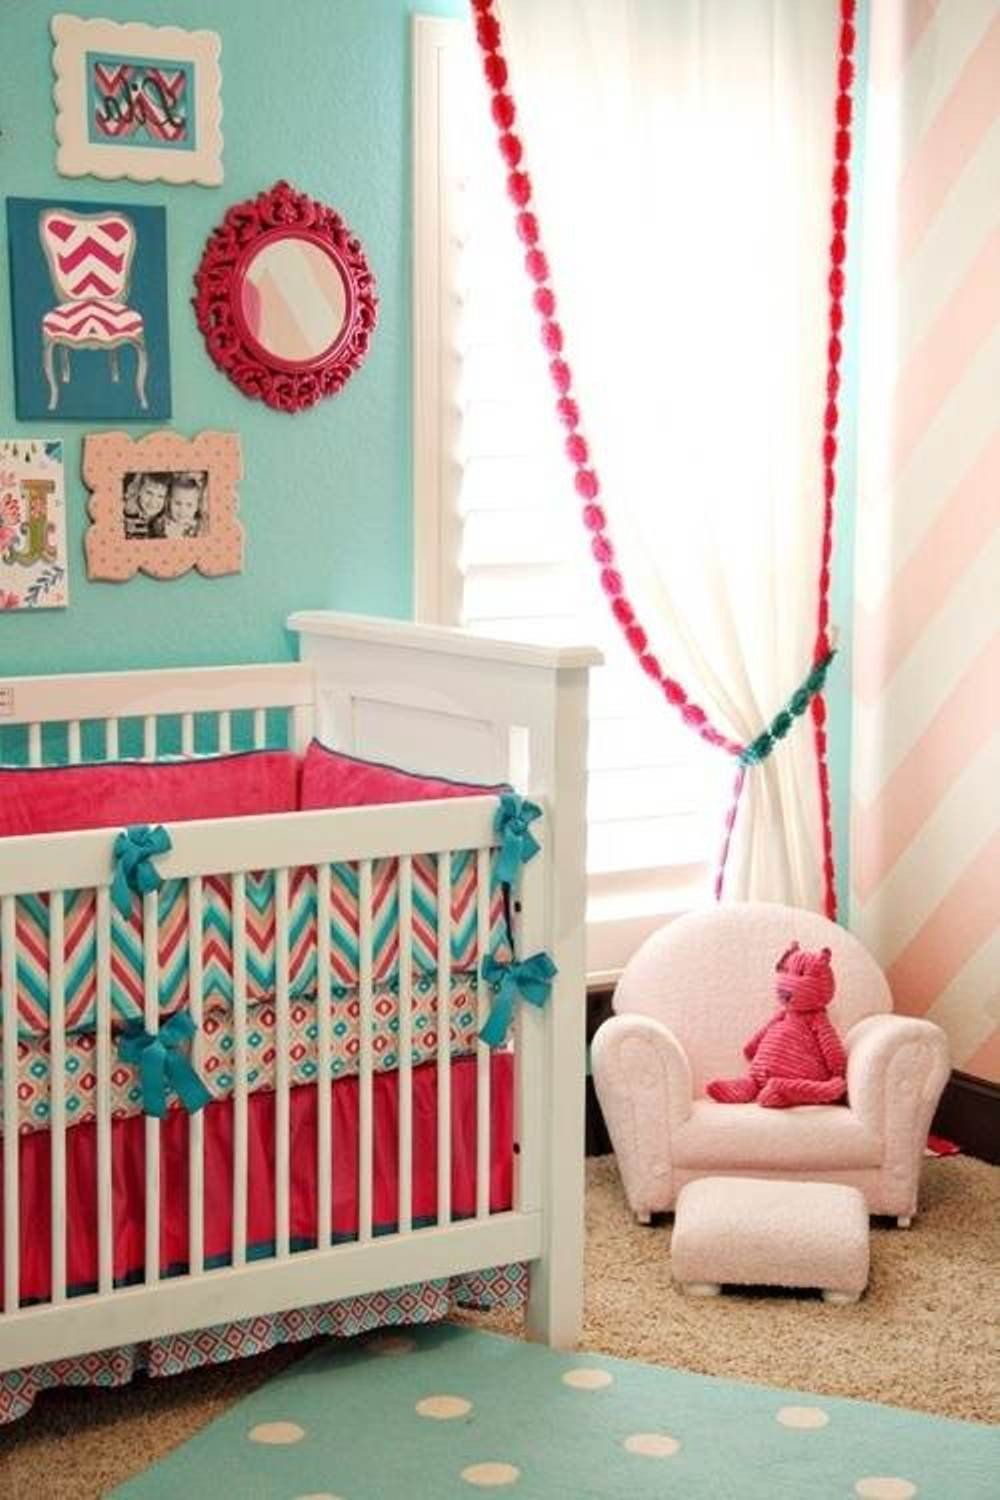 Baby Girl Room Decor Ideas Elegant 25 Baby Bedroom Design Ideas for Your Cutie Pie